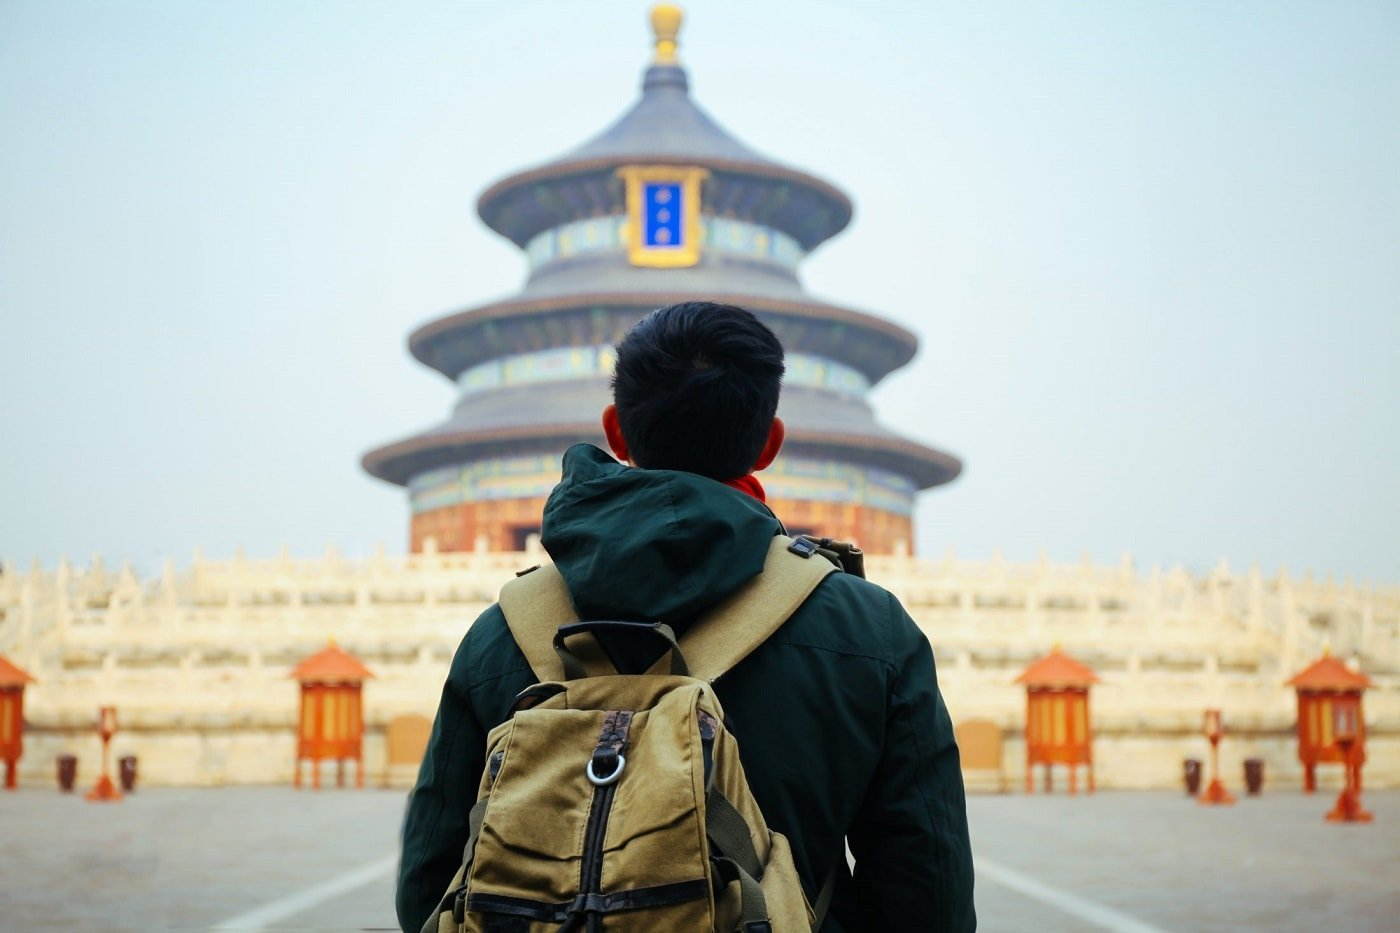 temple of heaven in Beijing, China - visit Beijing